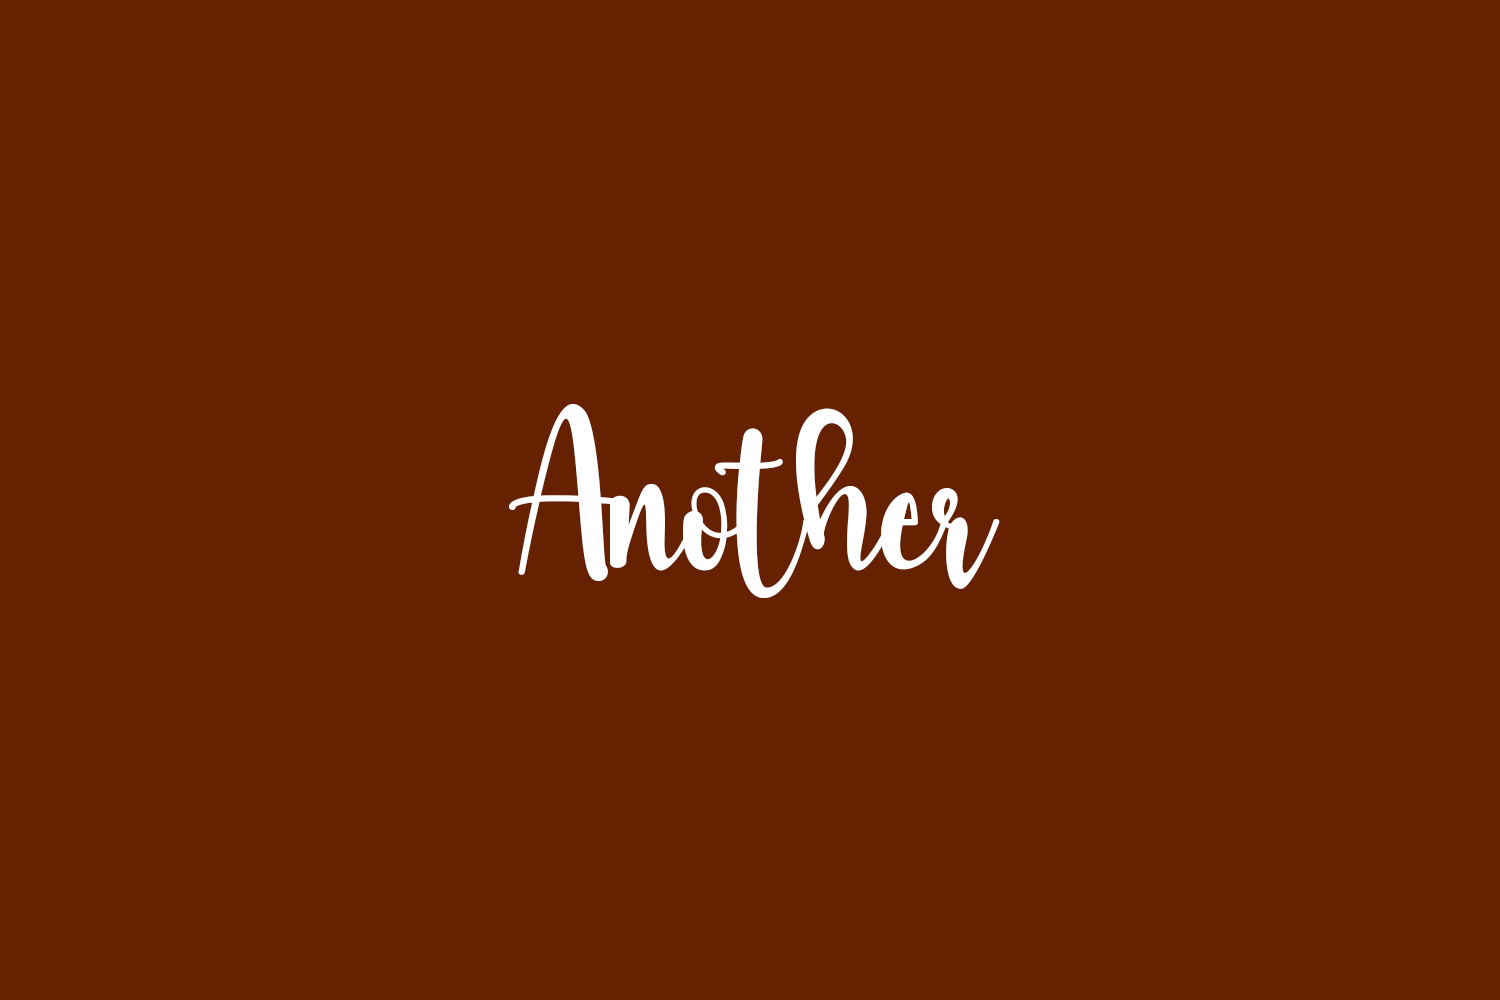 Another Free Font